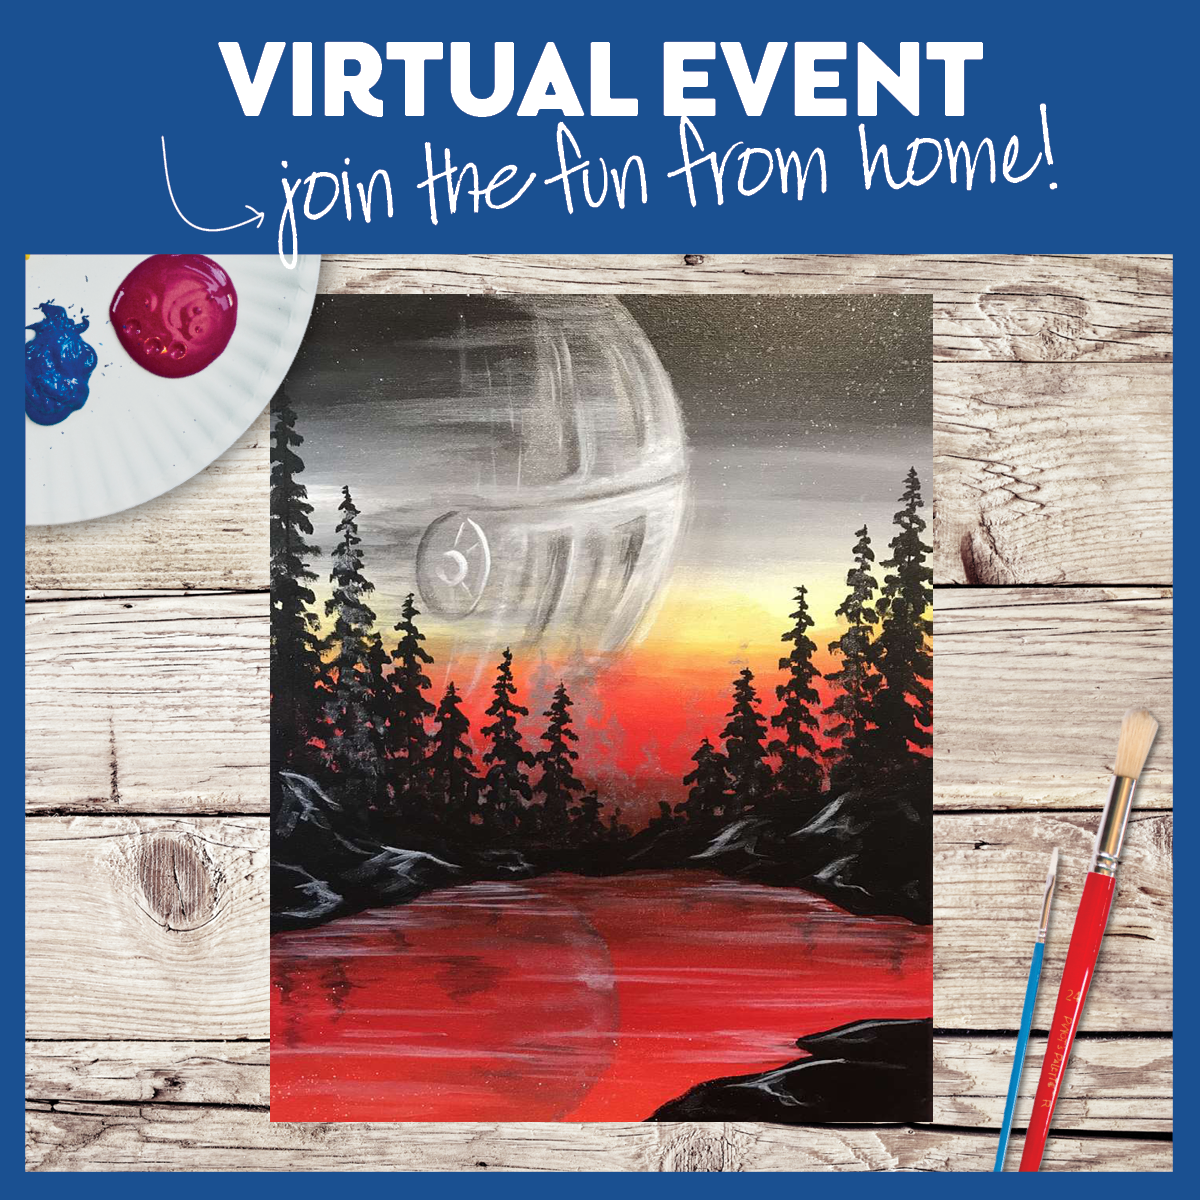 Virtual Event ~ Pick up Painting kit in Studio by 3 pm 5/4